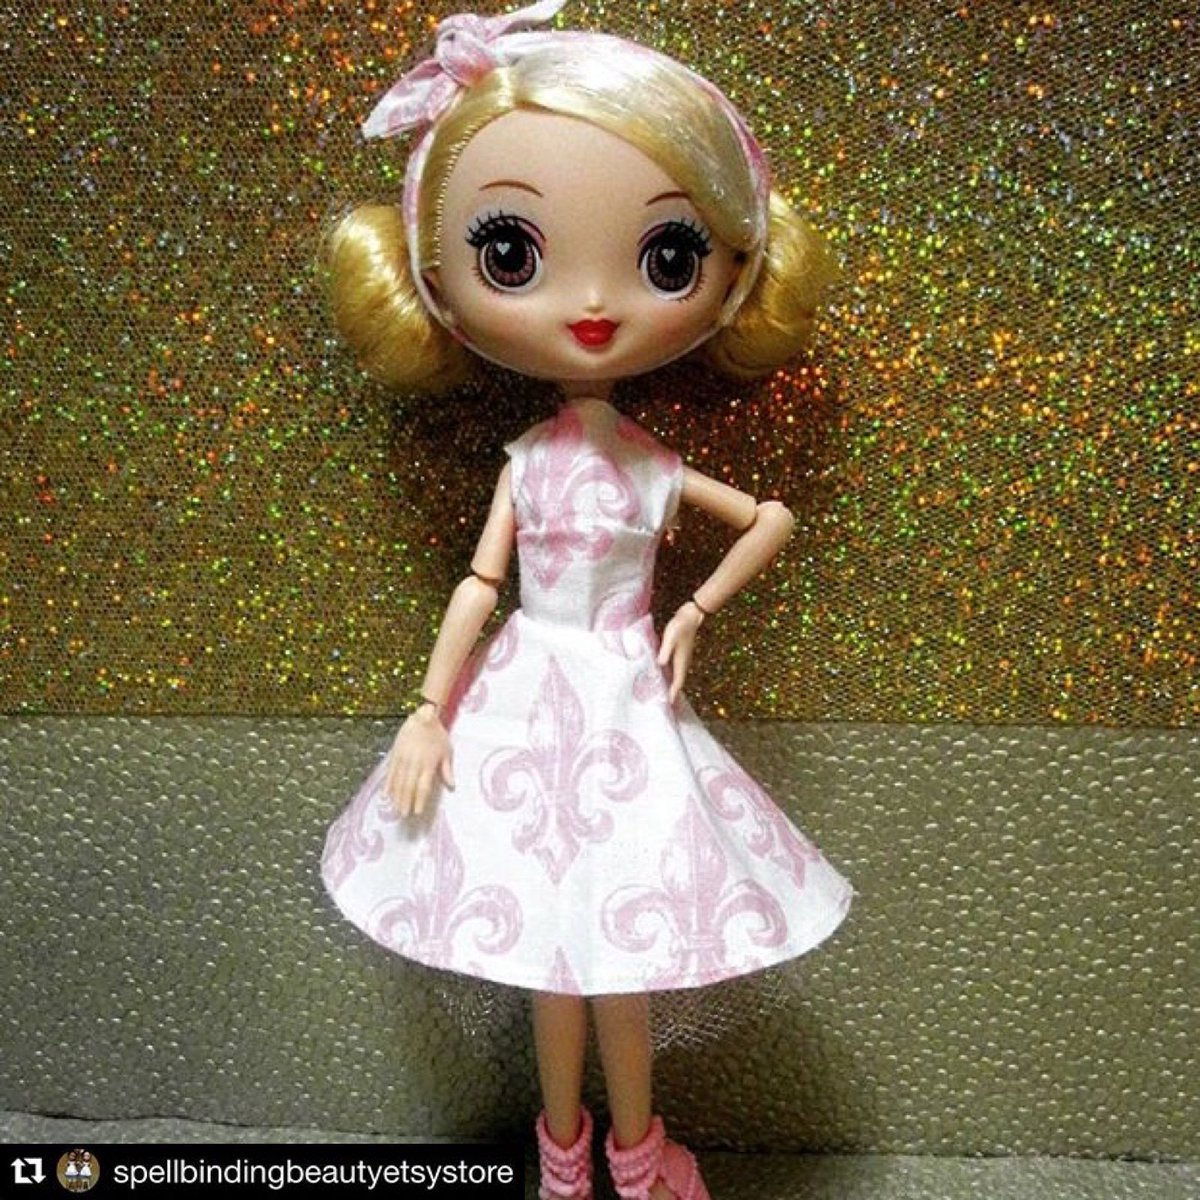 Instagram #Repost @spellbindingbeautyetsystore ・・・ Check us out on #Etsy! Our store link in bio. #KuuKuuHarajuku #G #GDoll #Spellbindingbeautyetsystore #spellbindingbeauty #bjd #bjdclothes #bjdcustomclothes #dollclothesofinstagram #MelyndaKaufman #MelyndaAnnKaufman